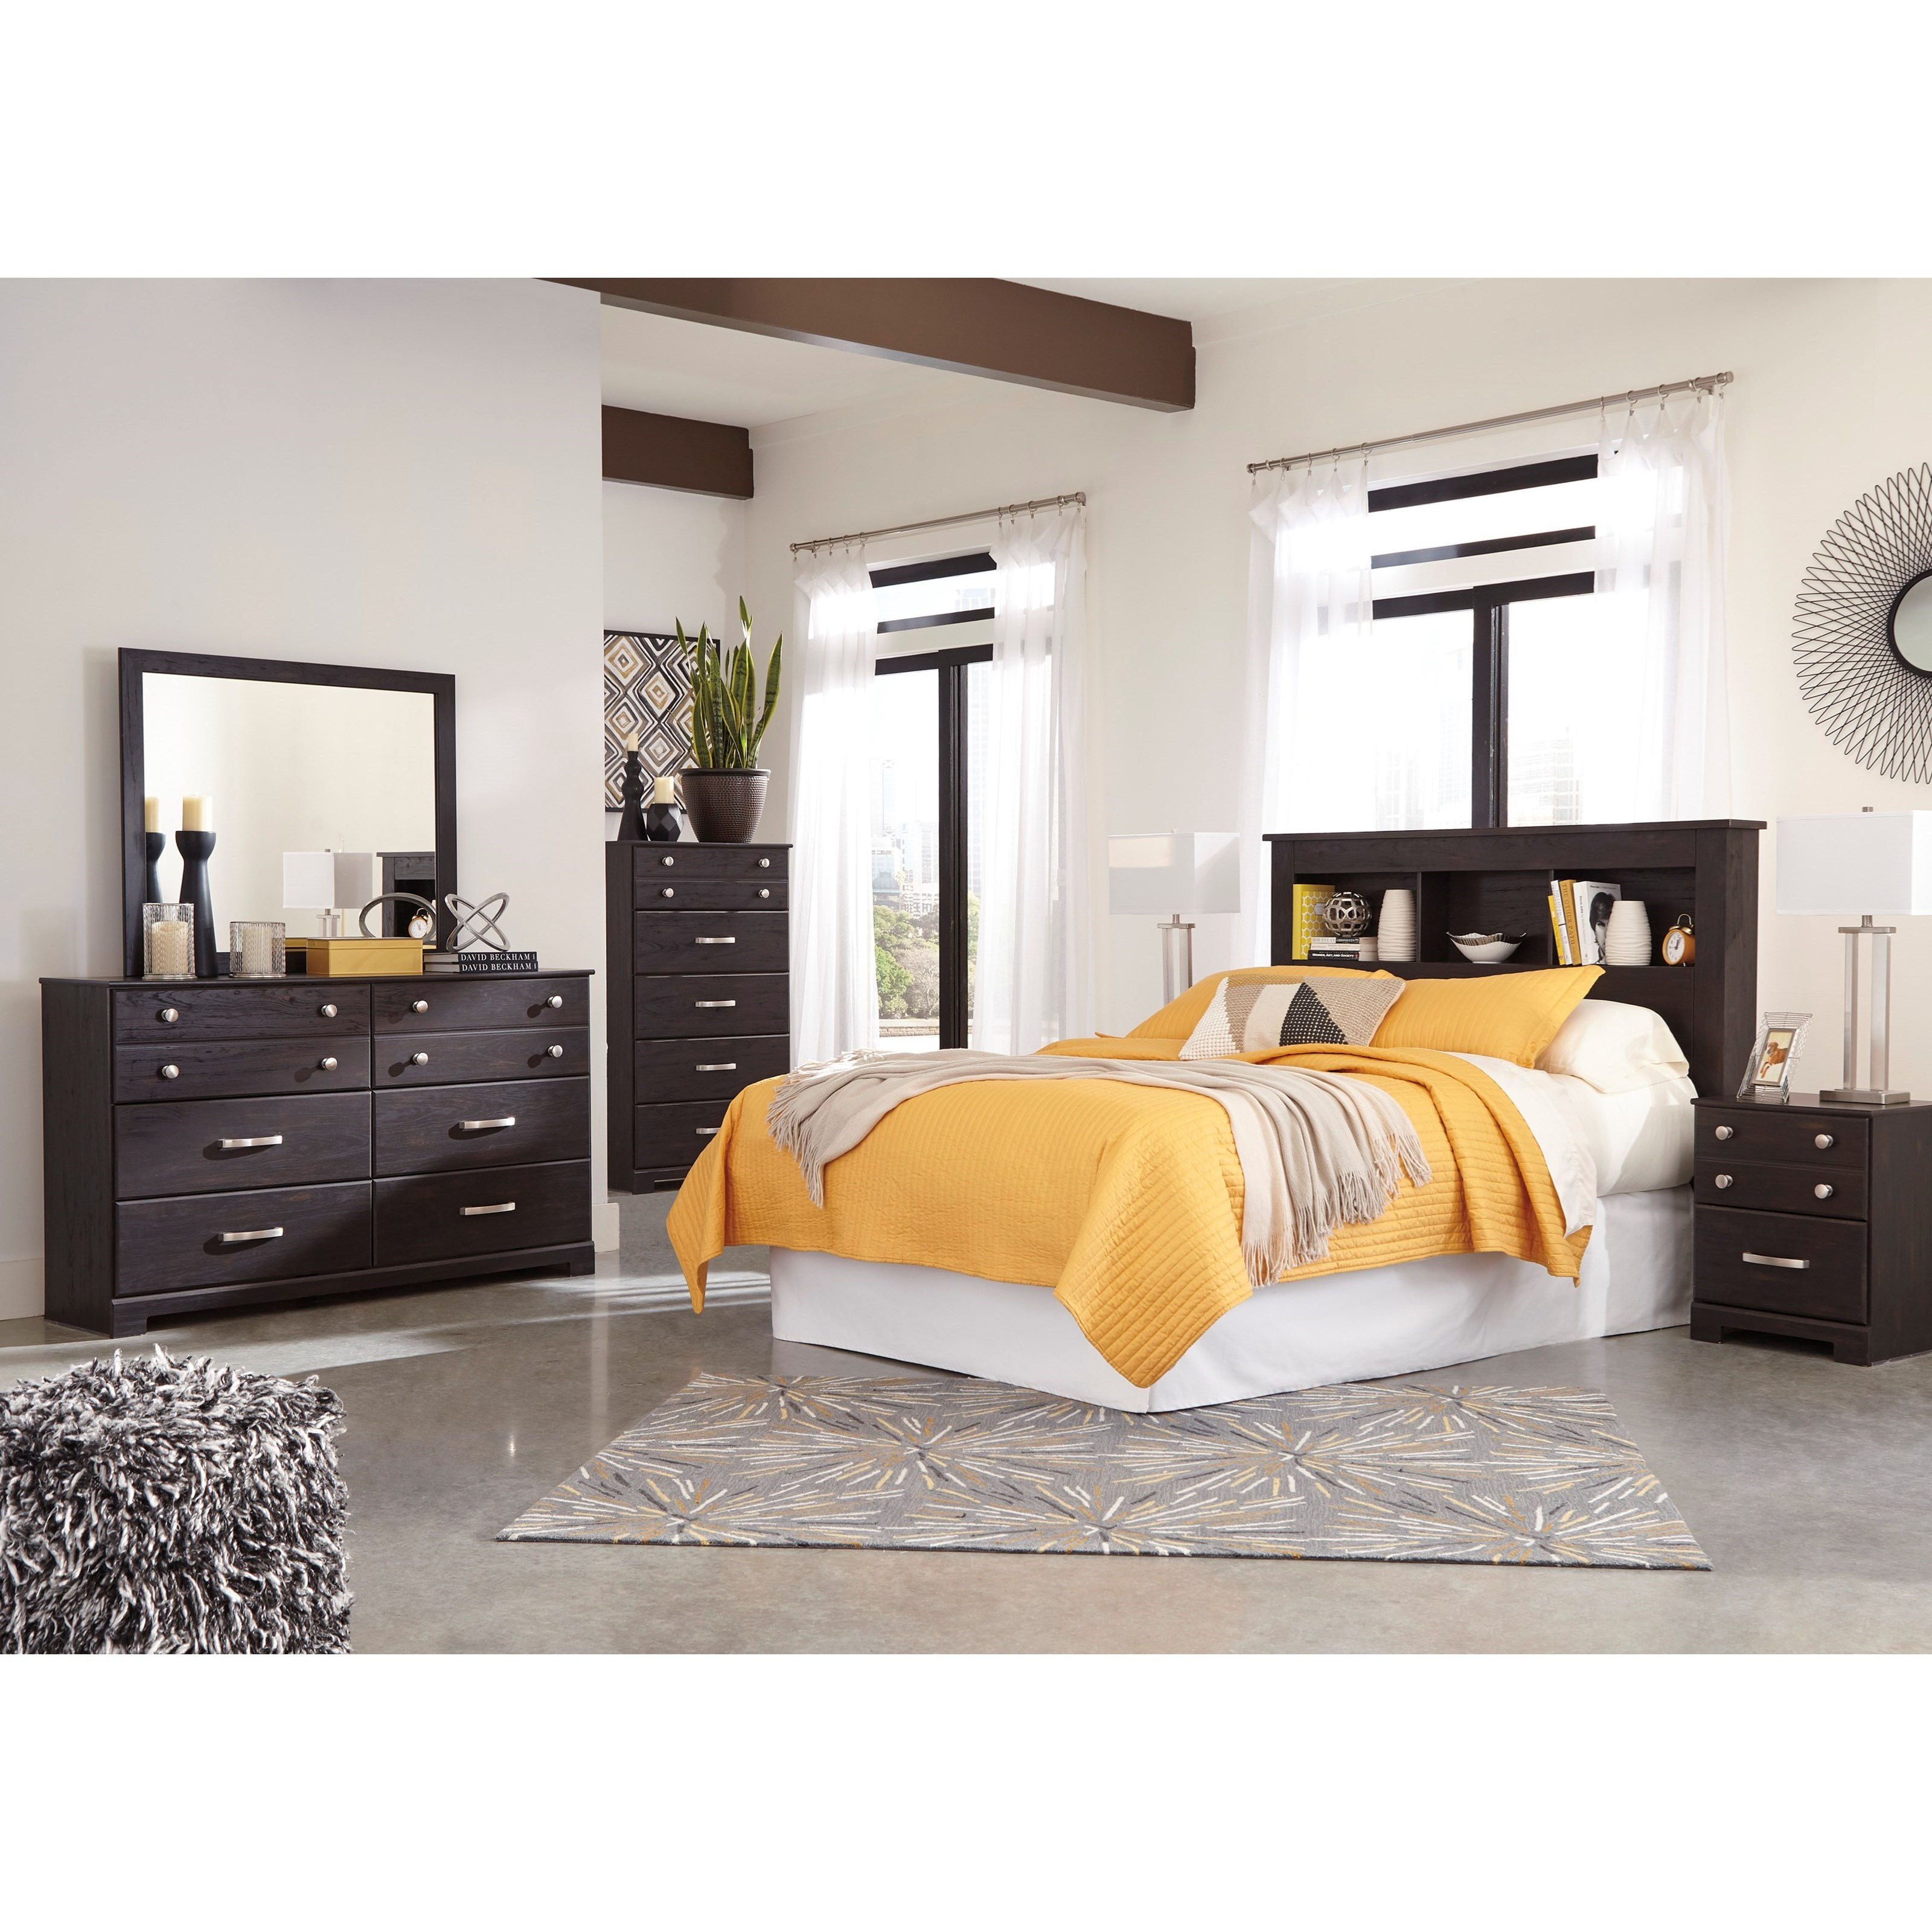 Signature Design By Ashley Willowton Queen Bedroom Group: Signature Design By Ashley Reylow Queen Bedroom Group